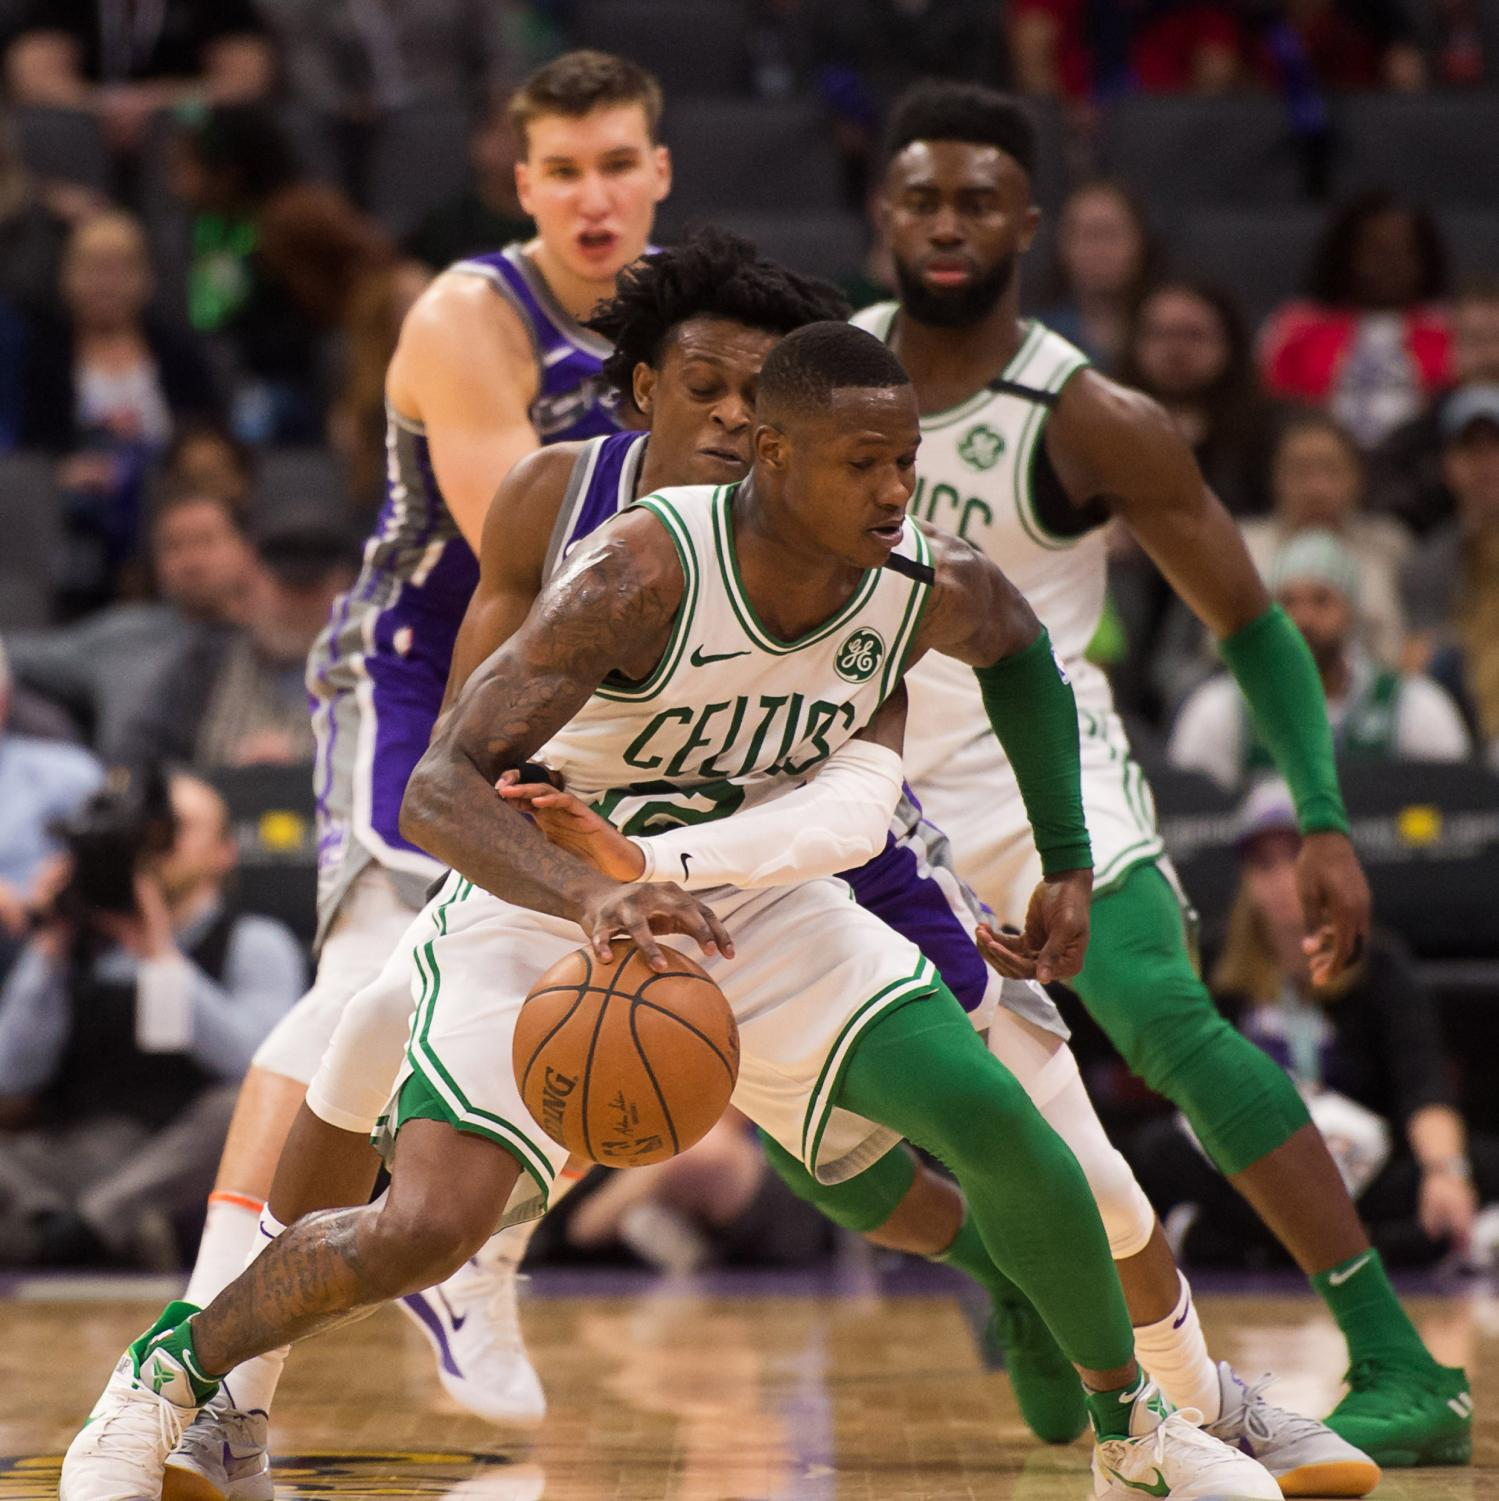 With the help of Terry Rozier (12), Jaylen Brown, and Jayson Tatum, the Boston Celtics lead the Milwaukee Bucks 2-0 in the first round.